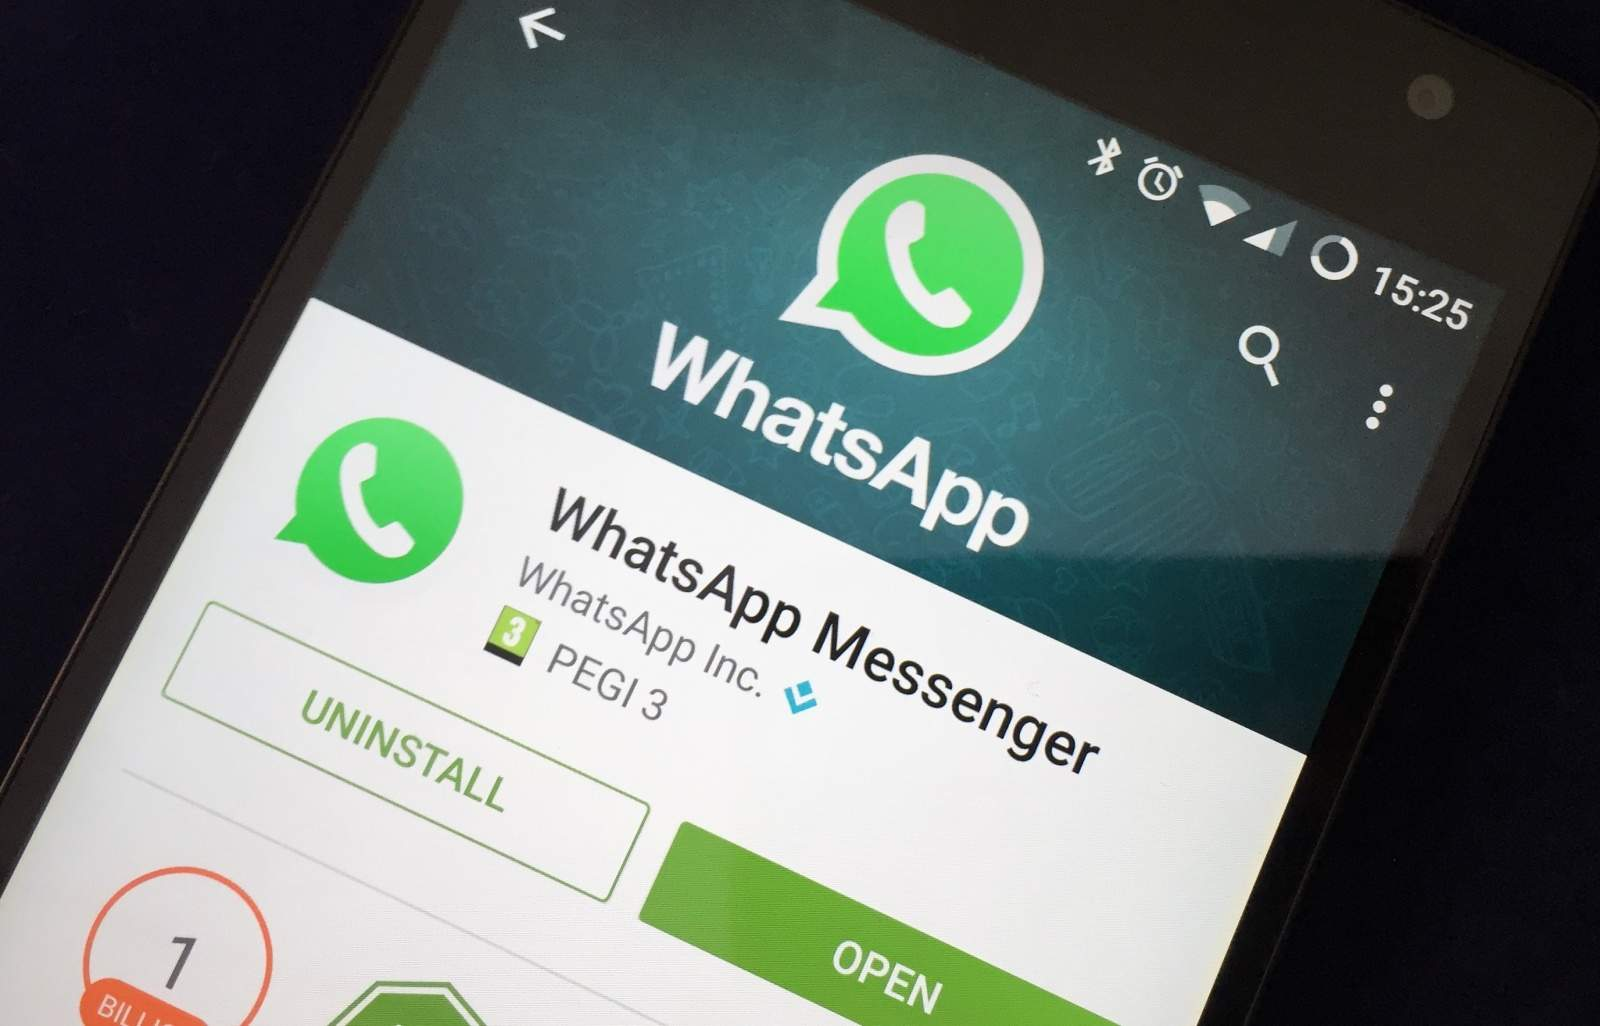 3 Ways to Track WhatsApp Messages of Others